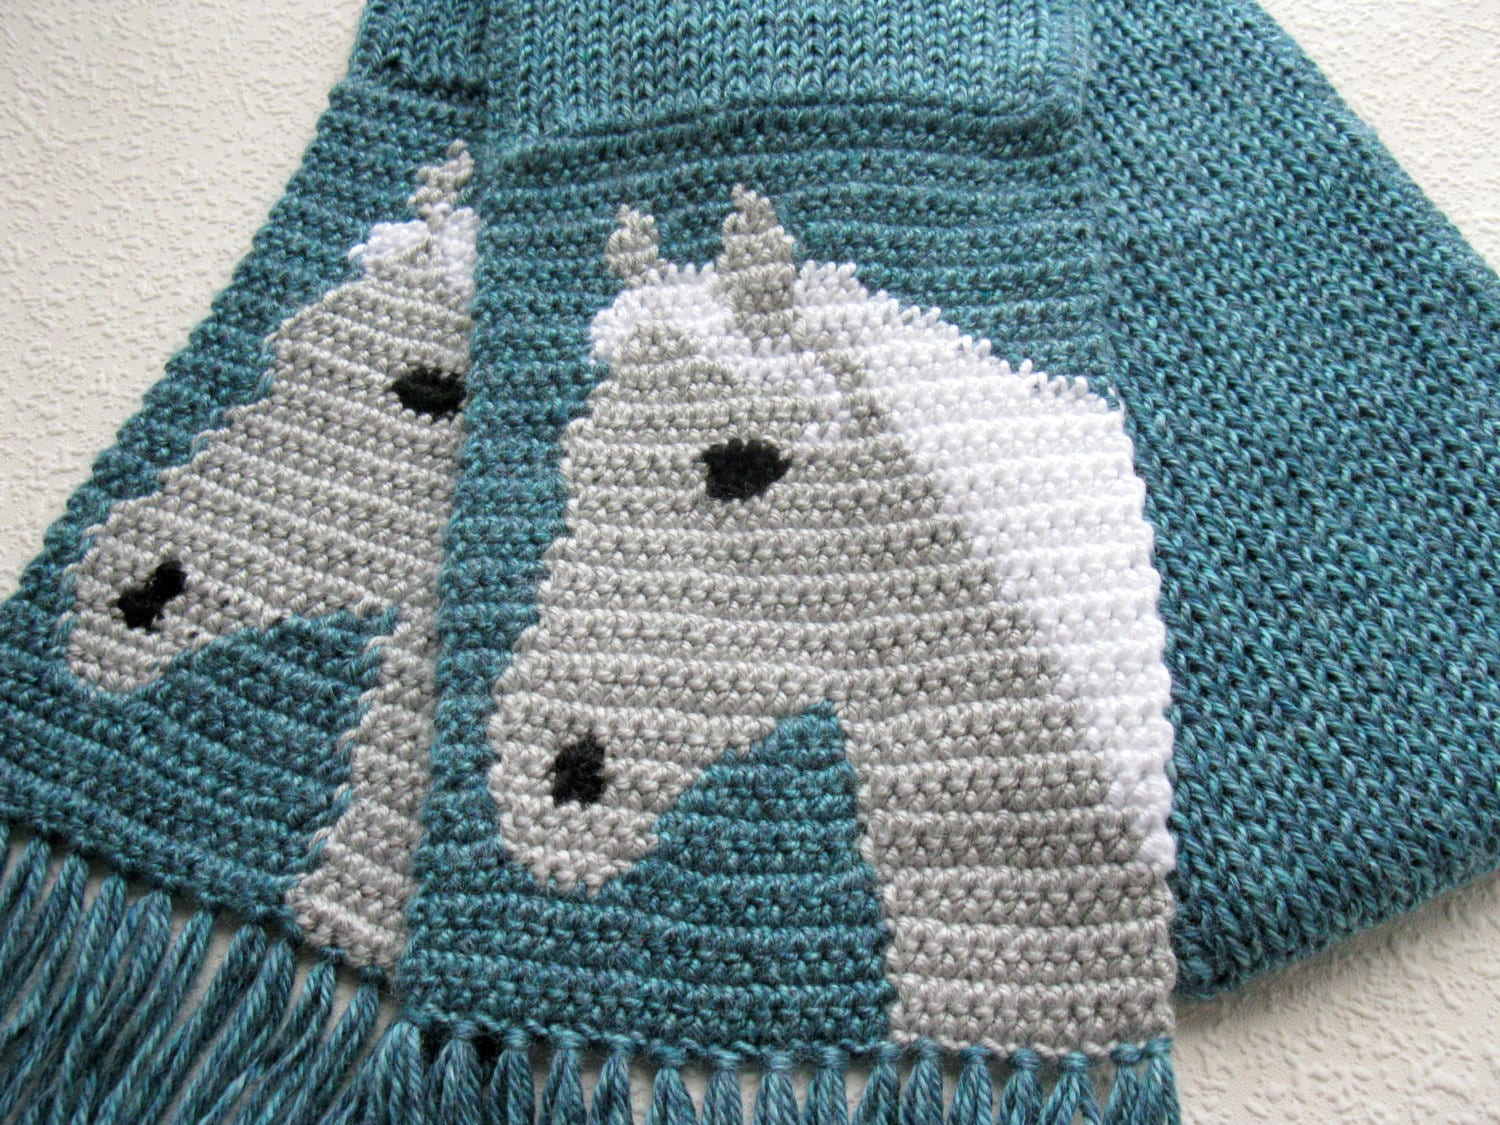 Horse Scarf. Blue knit and crochet scarf with gray horse